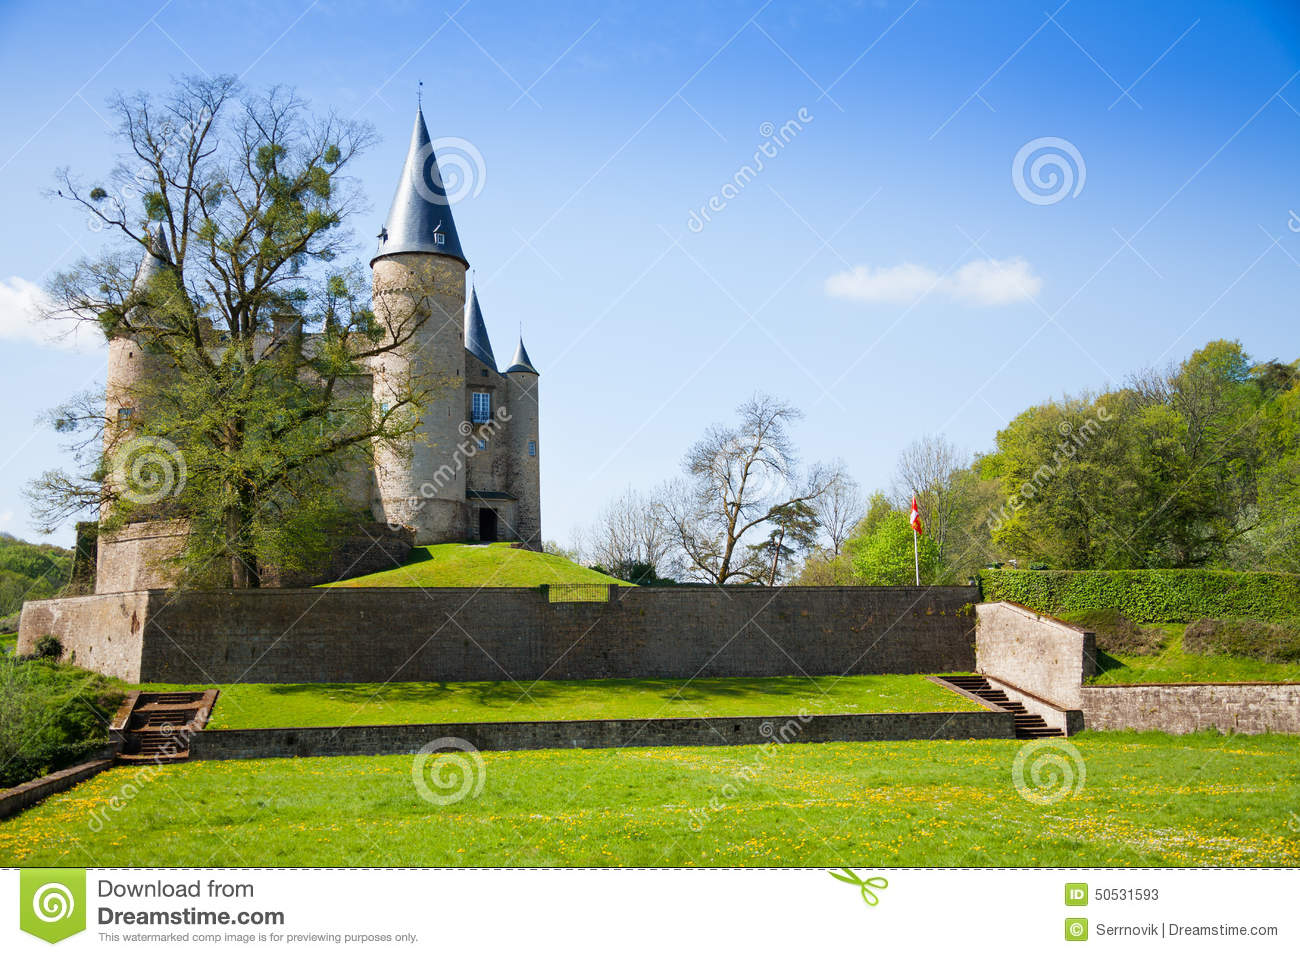 Beautiful Castle of Veves view during sunny day